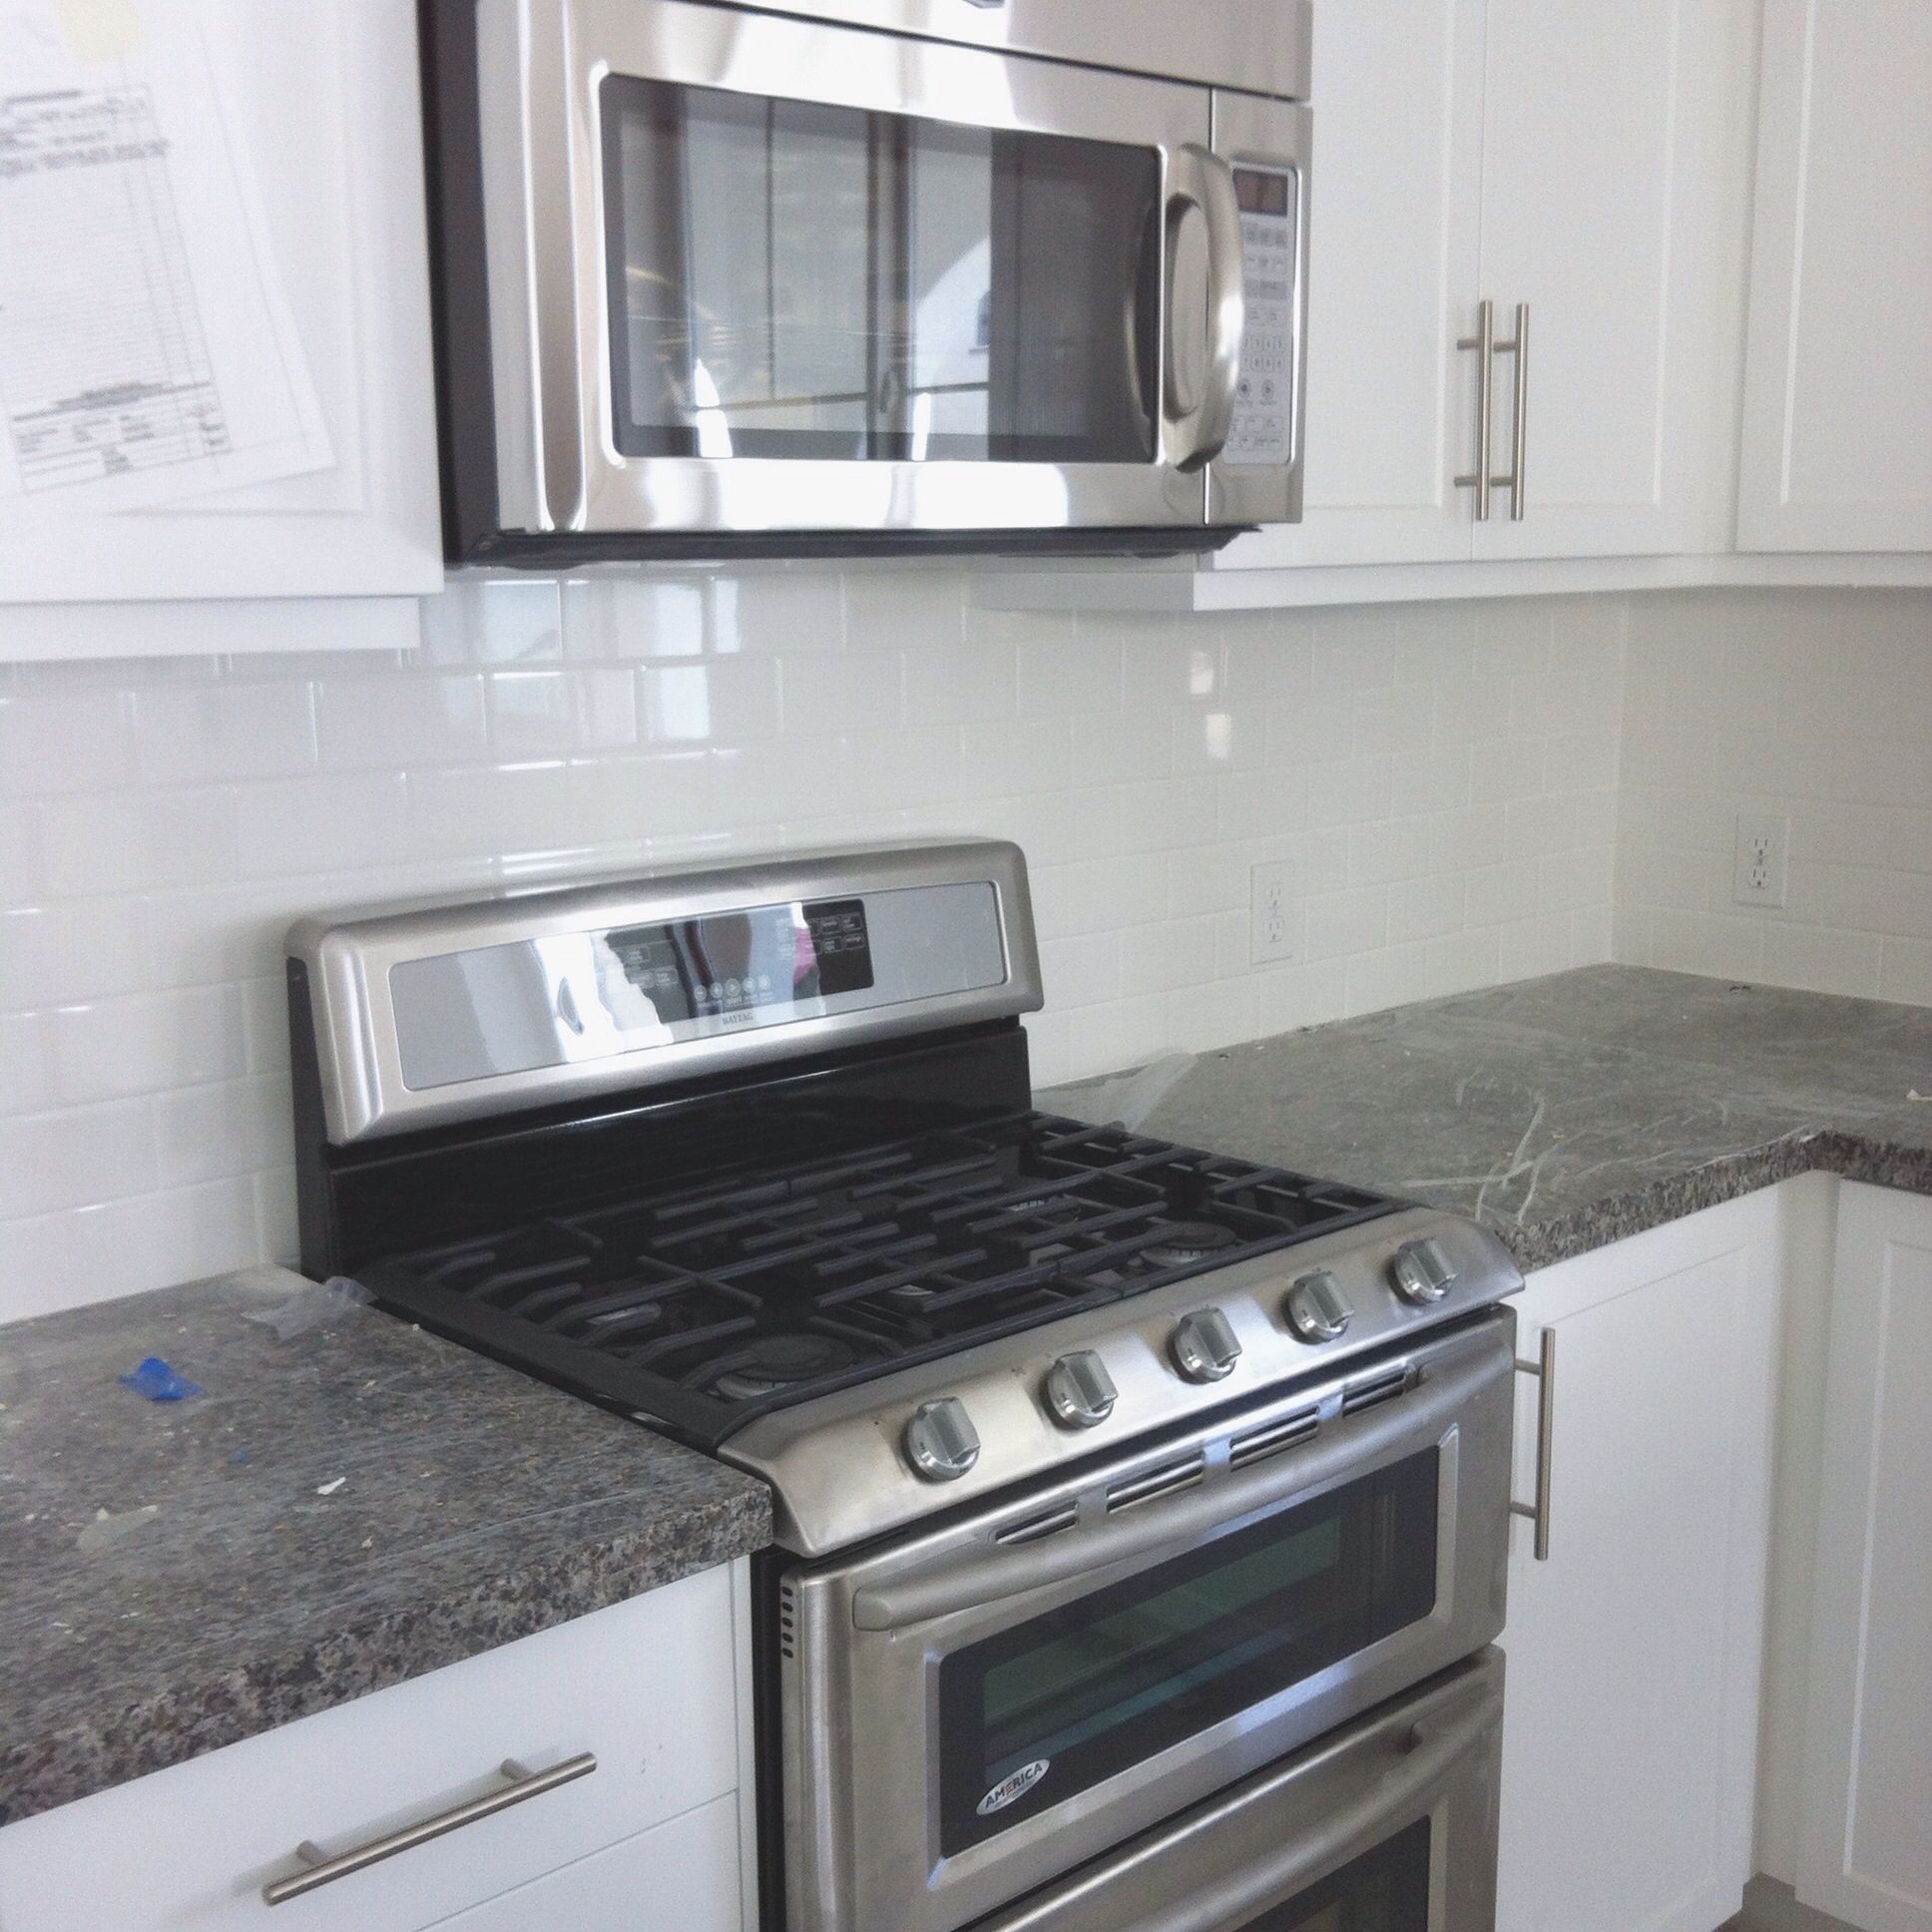 Kitchen Backsplash Granite: White Subway Tile Backsplash And New Caledonia Granite